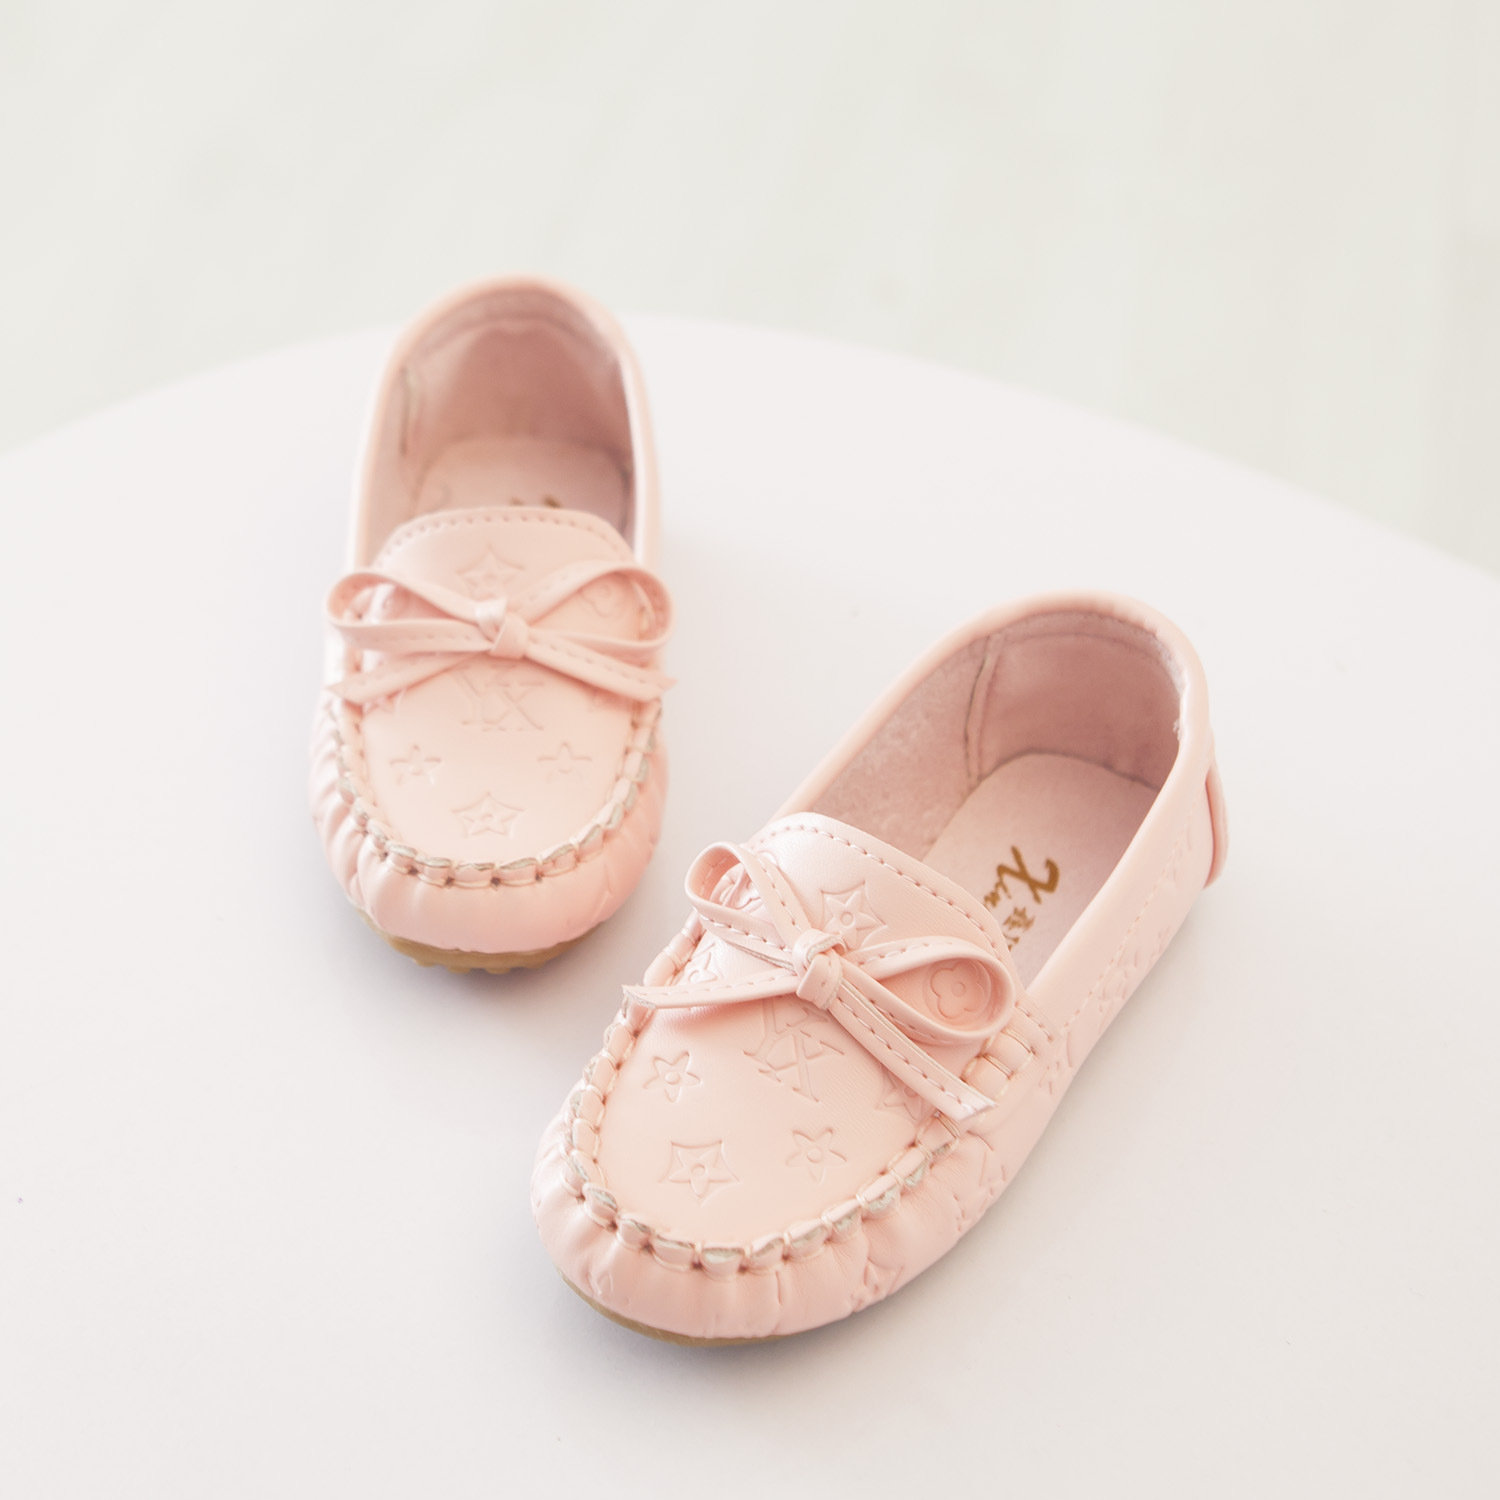 2015 Autumn Children Shoes Girls Shoes Slip ON Moccasins for Boys High Quality Leather Flat Shoes Fashion Bowknot Kids Sneakers<br><br>Aliexpress